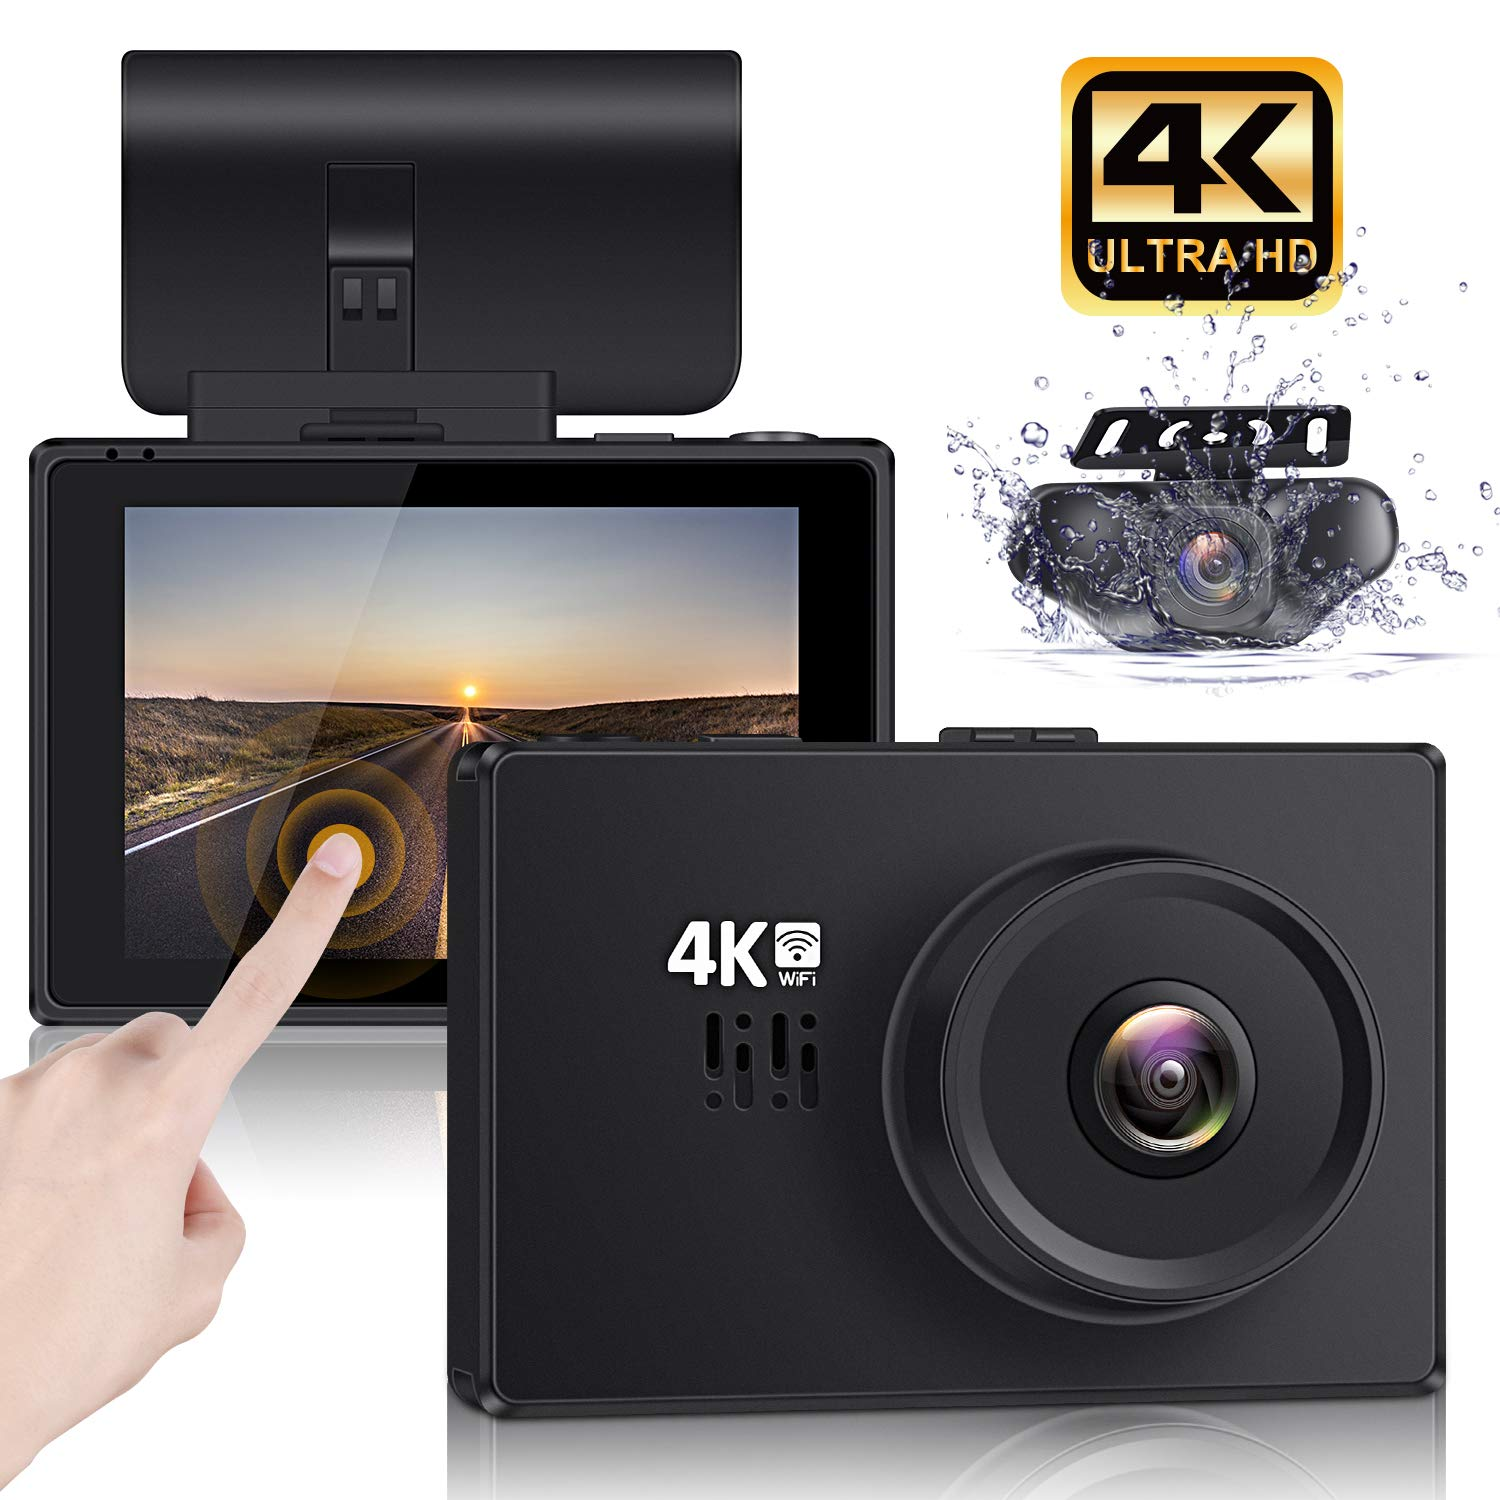 """Lifechaser Dual Dash Cam 4K Front and Rear Car Camera 1080P+1080P, 3"""" OLED Touch Screen WiFi GPS Night Mode 150°, Parking Mode, Time Lapse, WDR, G-Sensor, Loop Recording for Cars, Trucks"""